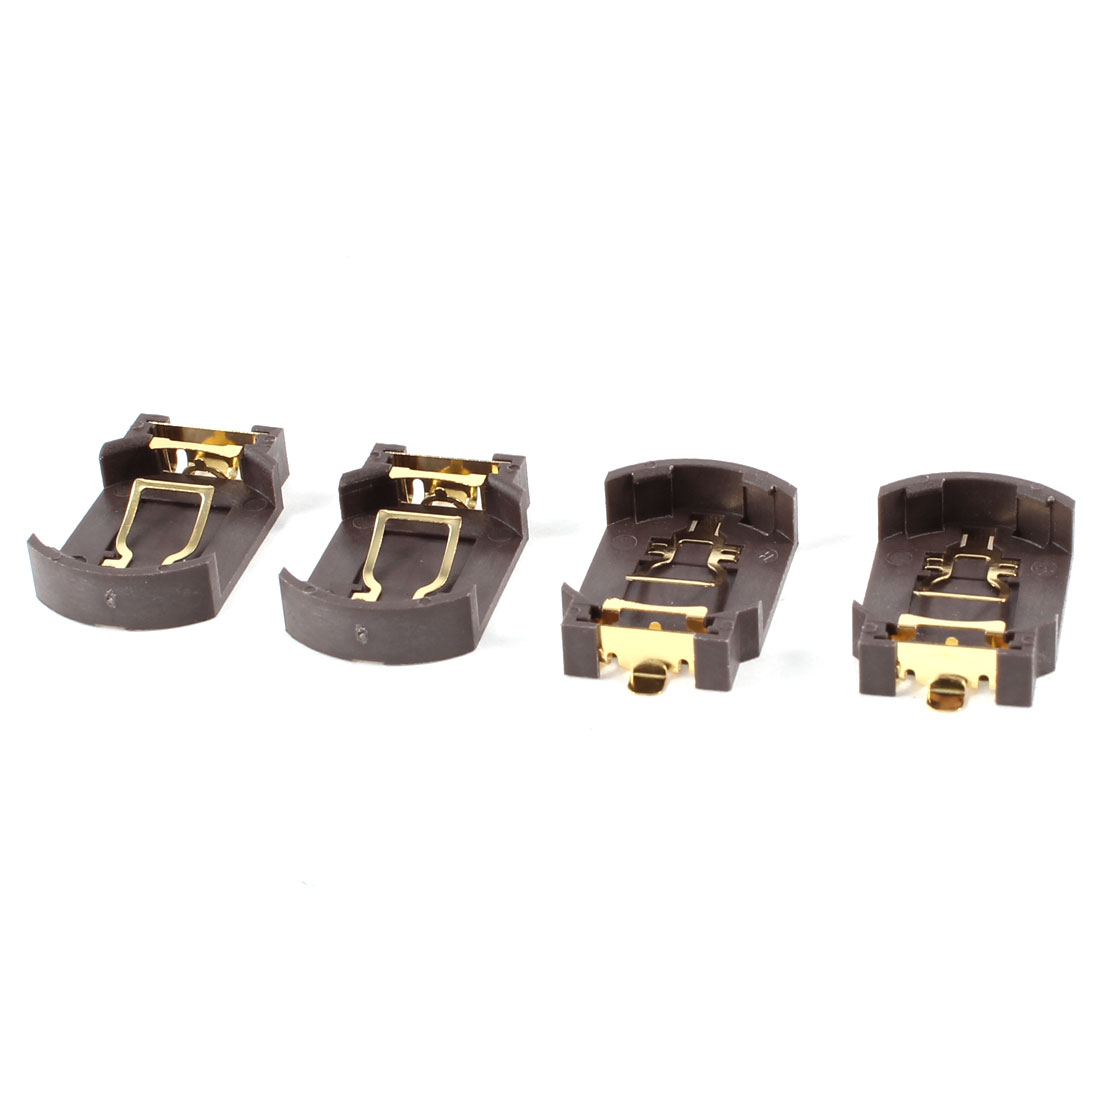 4 Pcs Brown Plastic Button Coin Cell Battery Socket Holder for CR2032